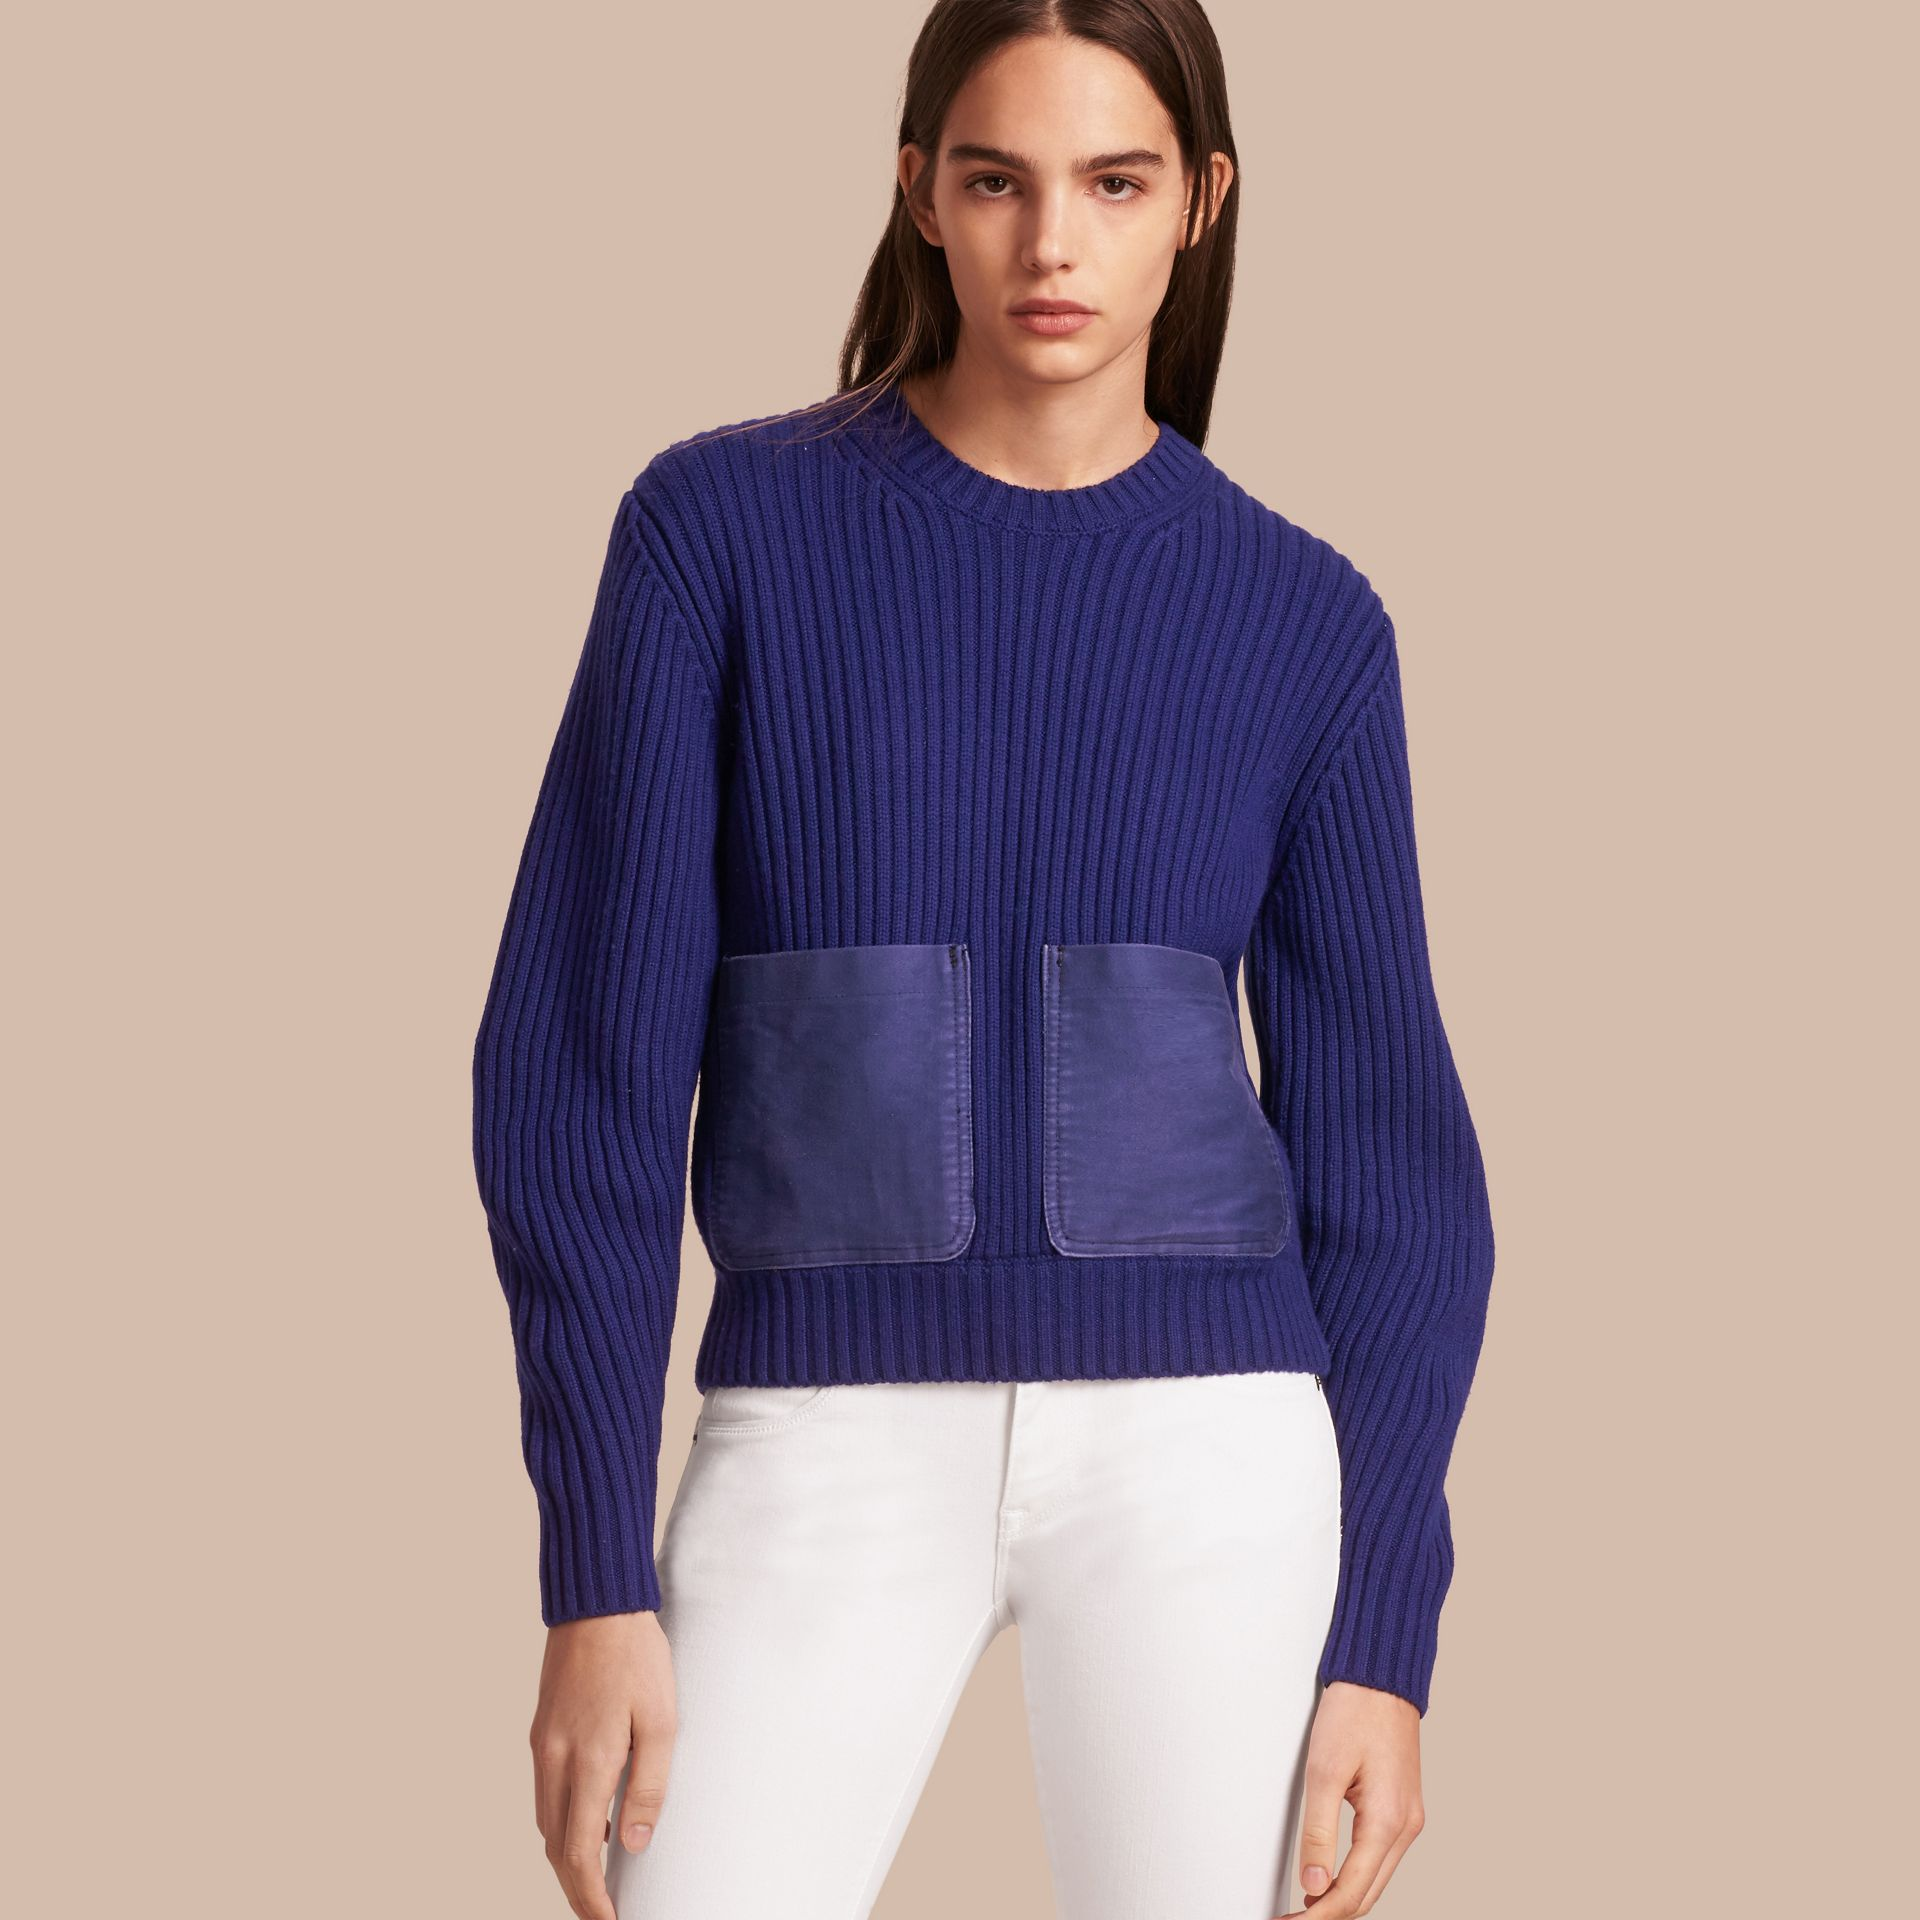 Oversize Pocket Detail Rib Knit Cashmere Cotton Sweater in Bright Navy - Women | Burberry - gallery image 1